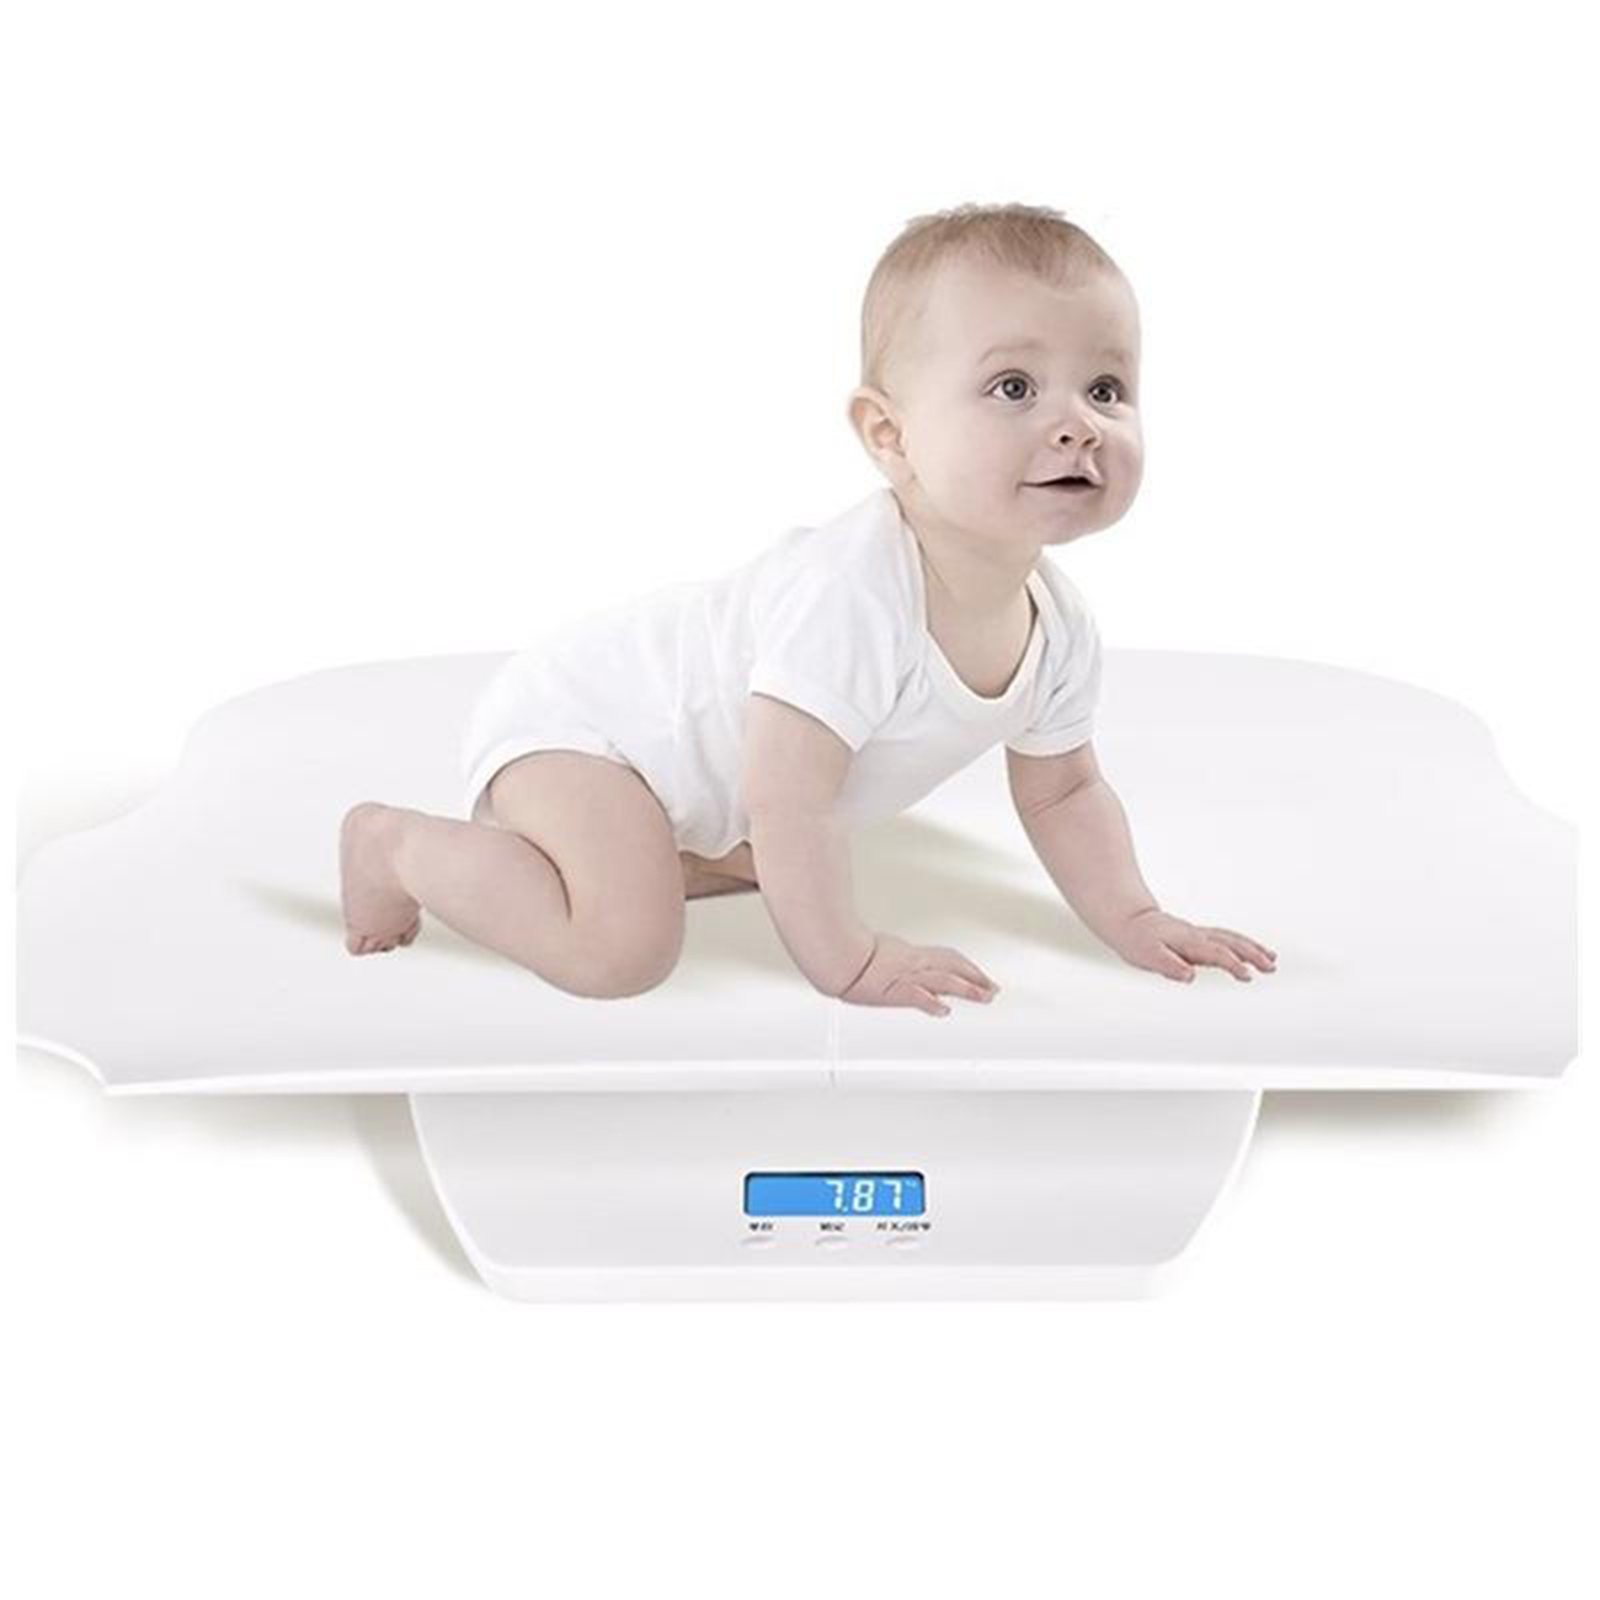 Multi-Function Baby Scale Puppies Infant Scale LCD Display Holding Function